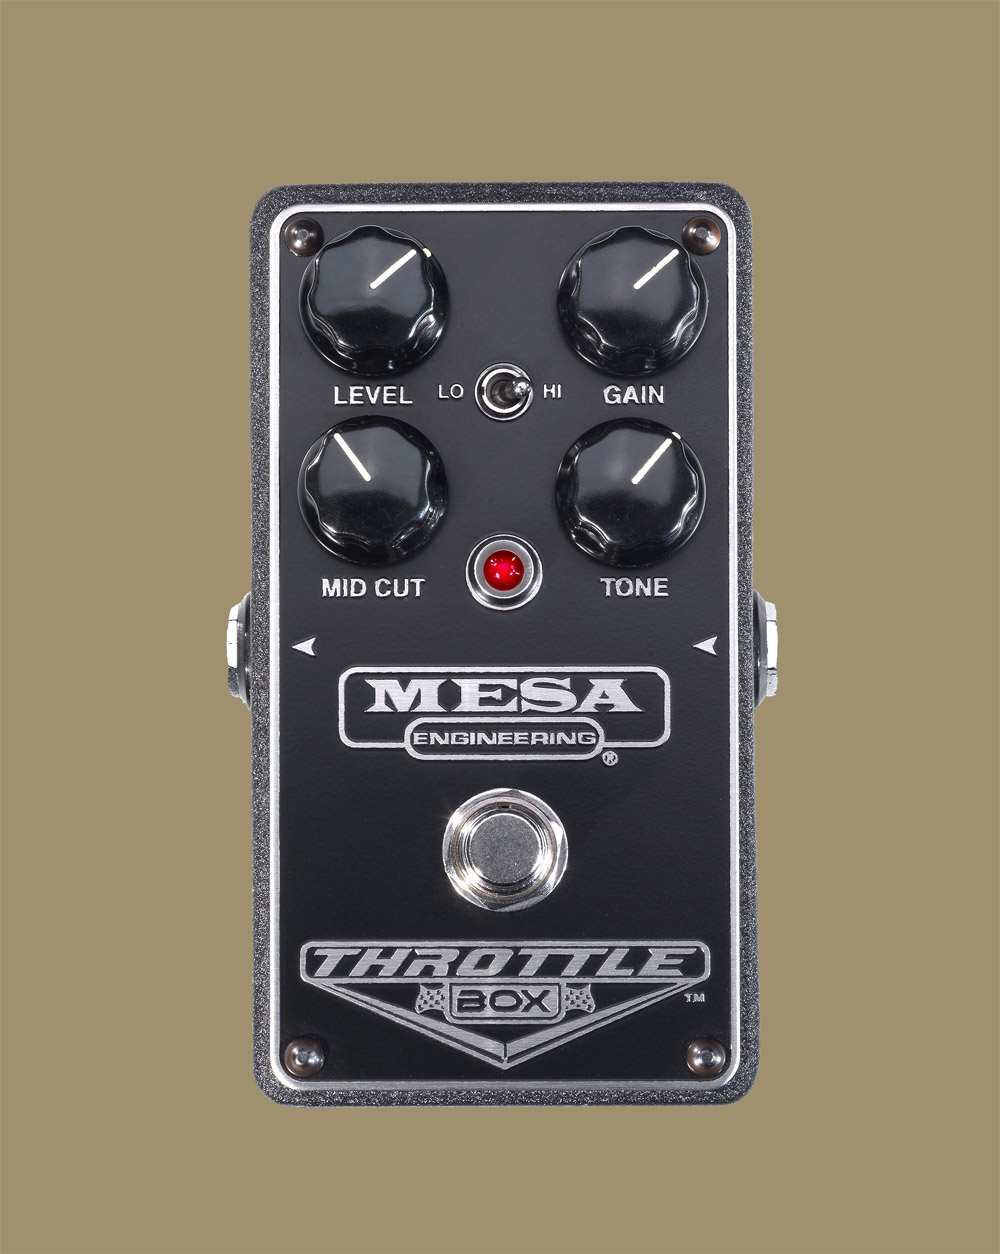 The Mesa Throttle Box High Gain Distortion Pedal